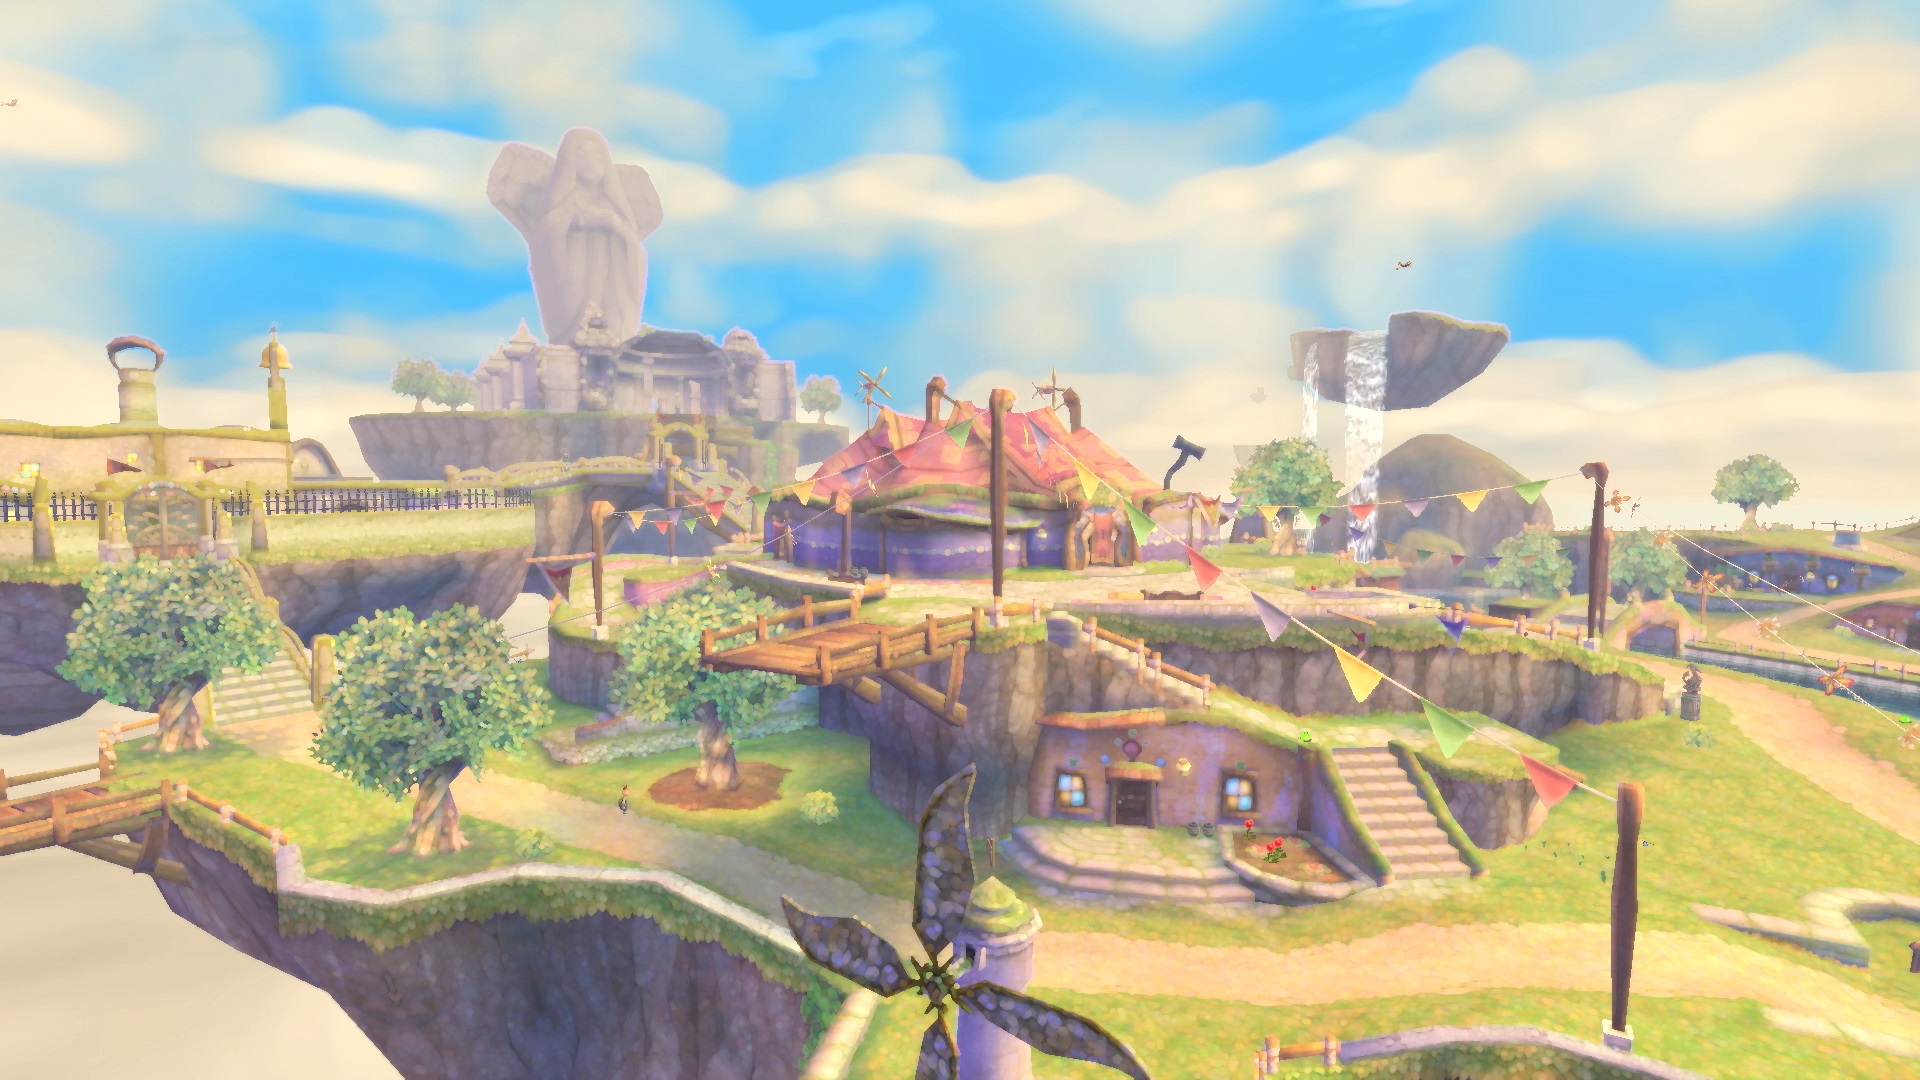 The city of skyloft from The Legend of Zelda